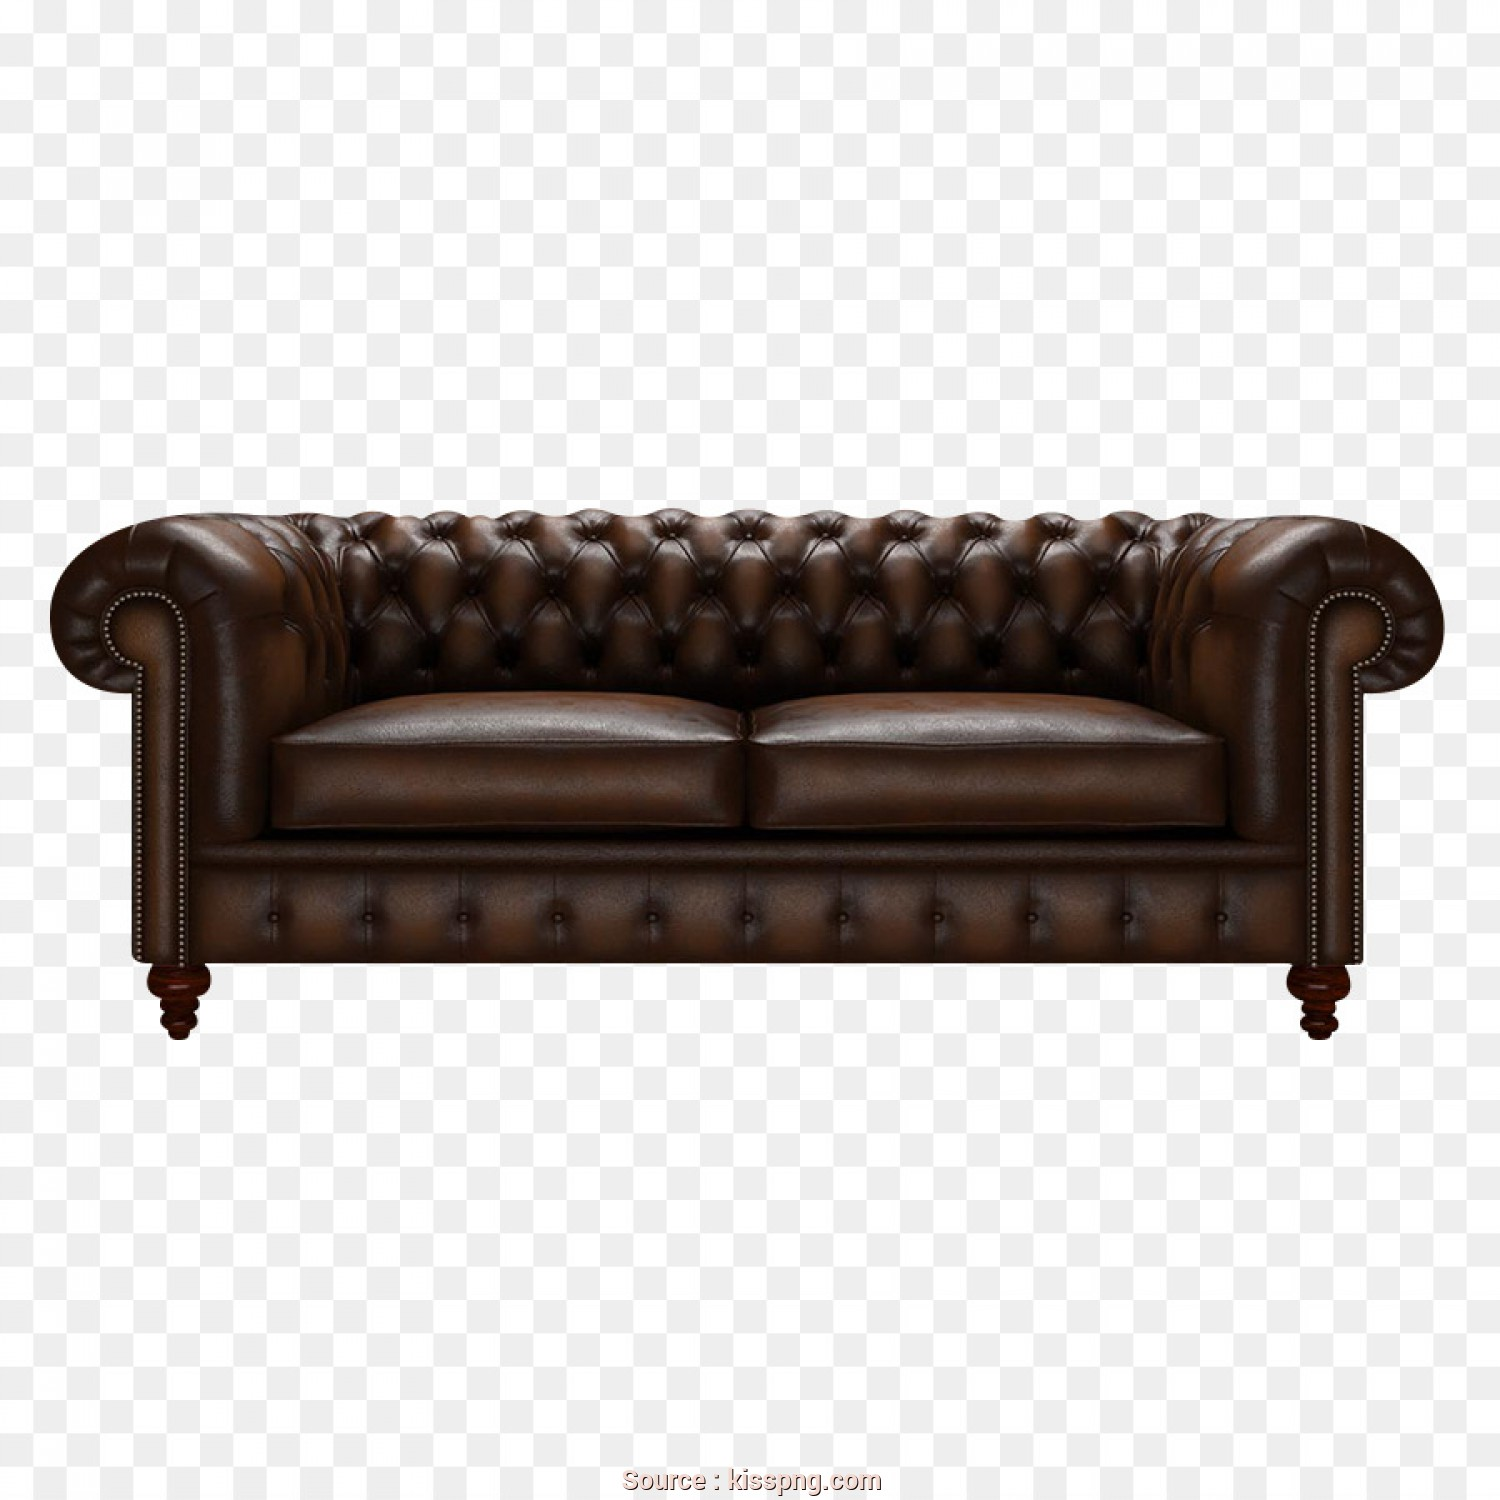 Klippan Ikea Koltuk, Elegante Loveseat Couch Klippan Furniture Leather, Soffa, Download